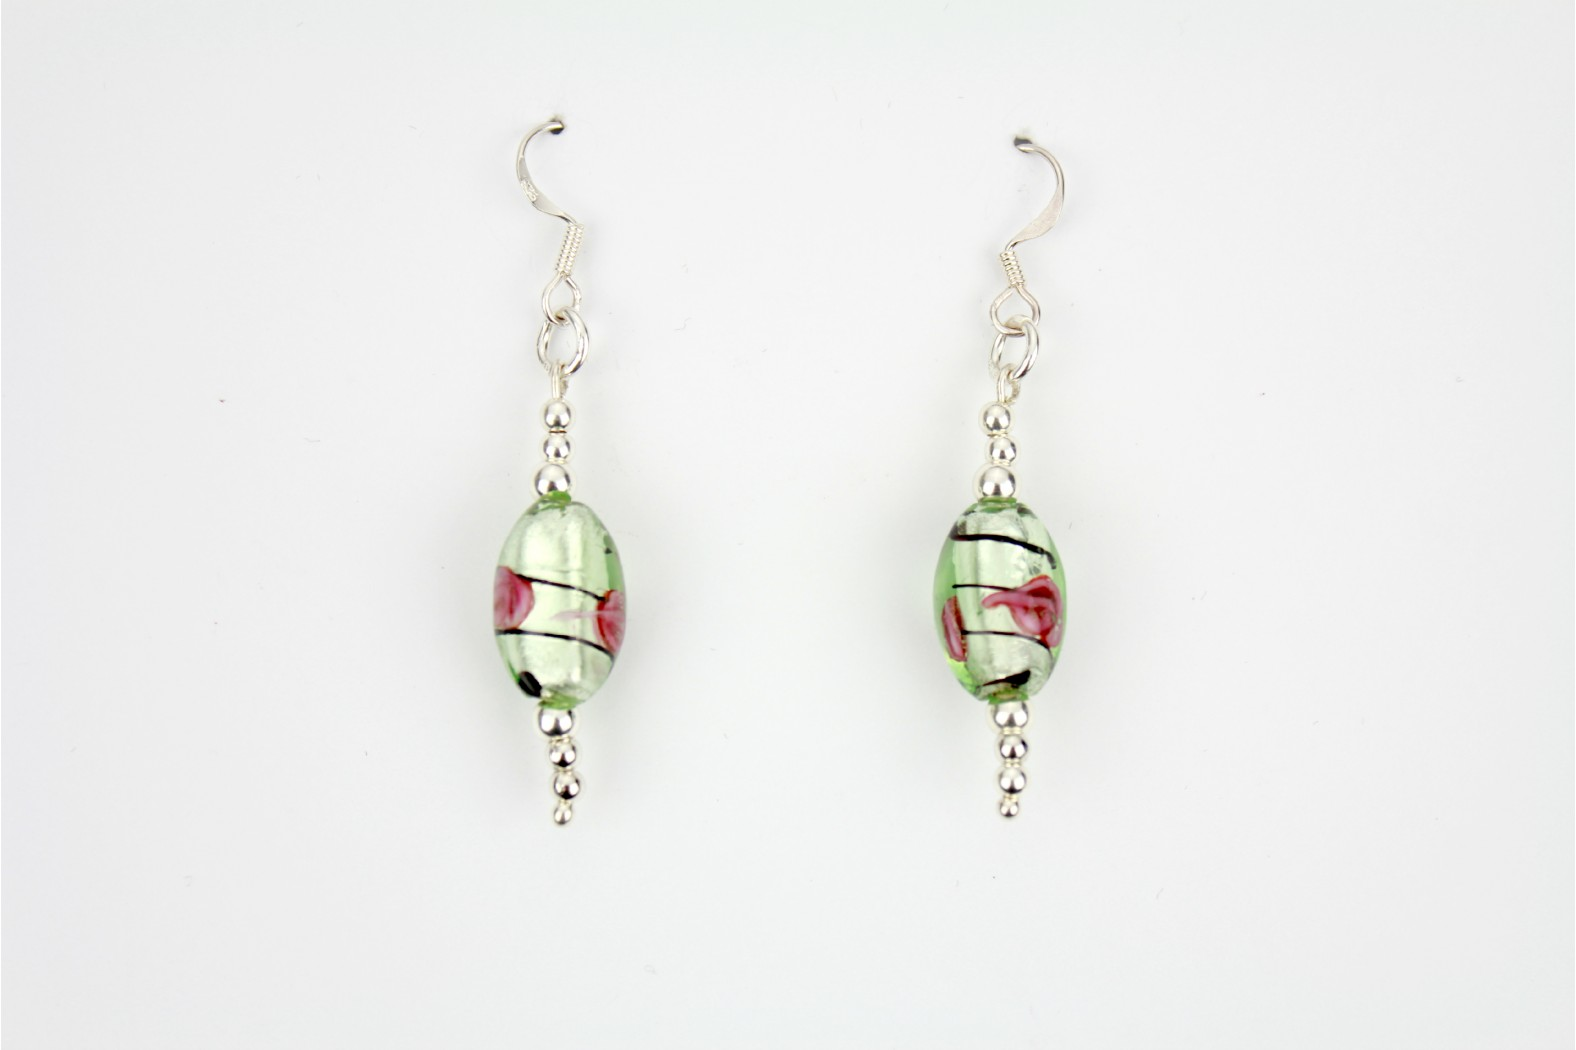 Dichroic Glass individual design with silver ball embellishments